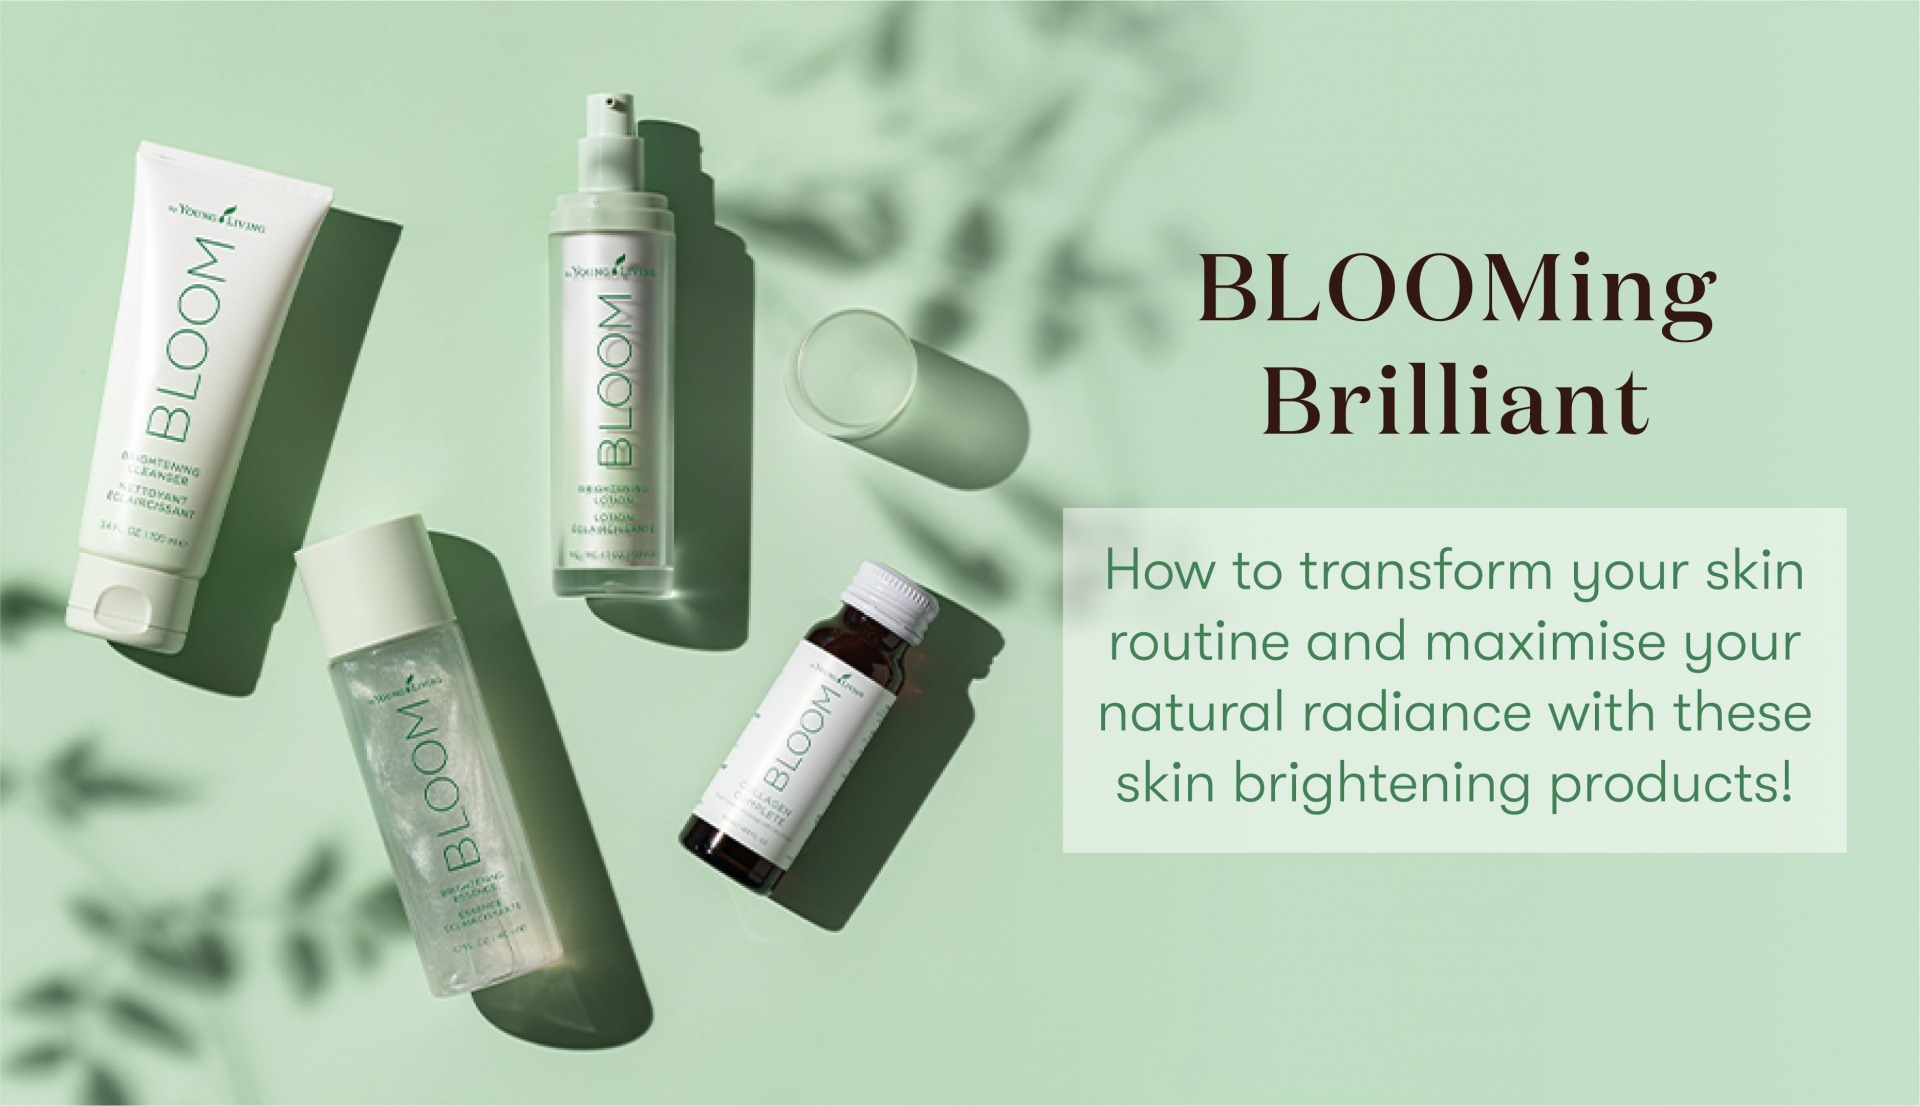 Bloom Skin Products by Young Living